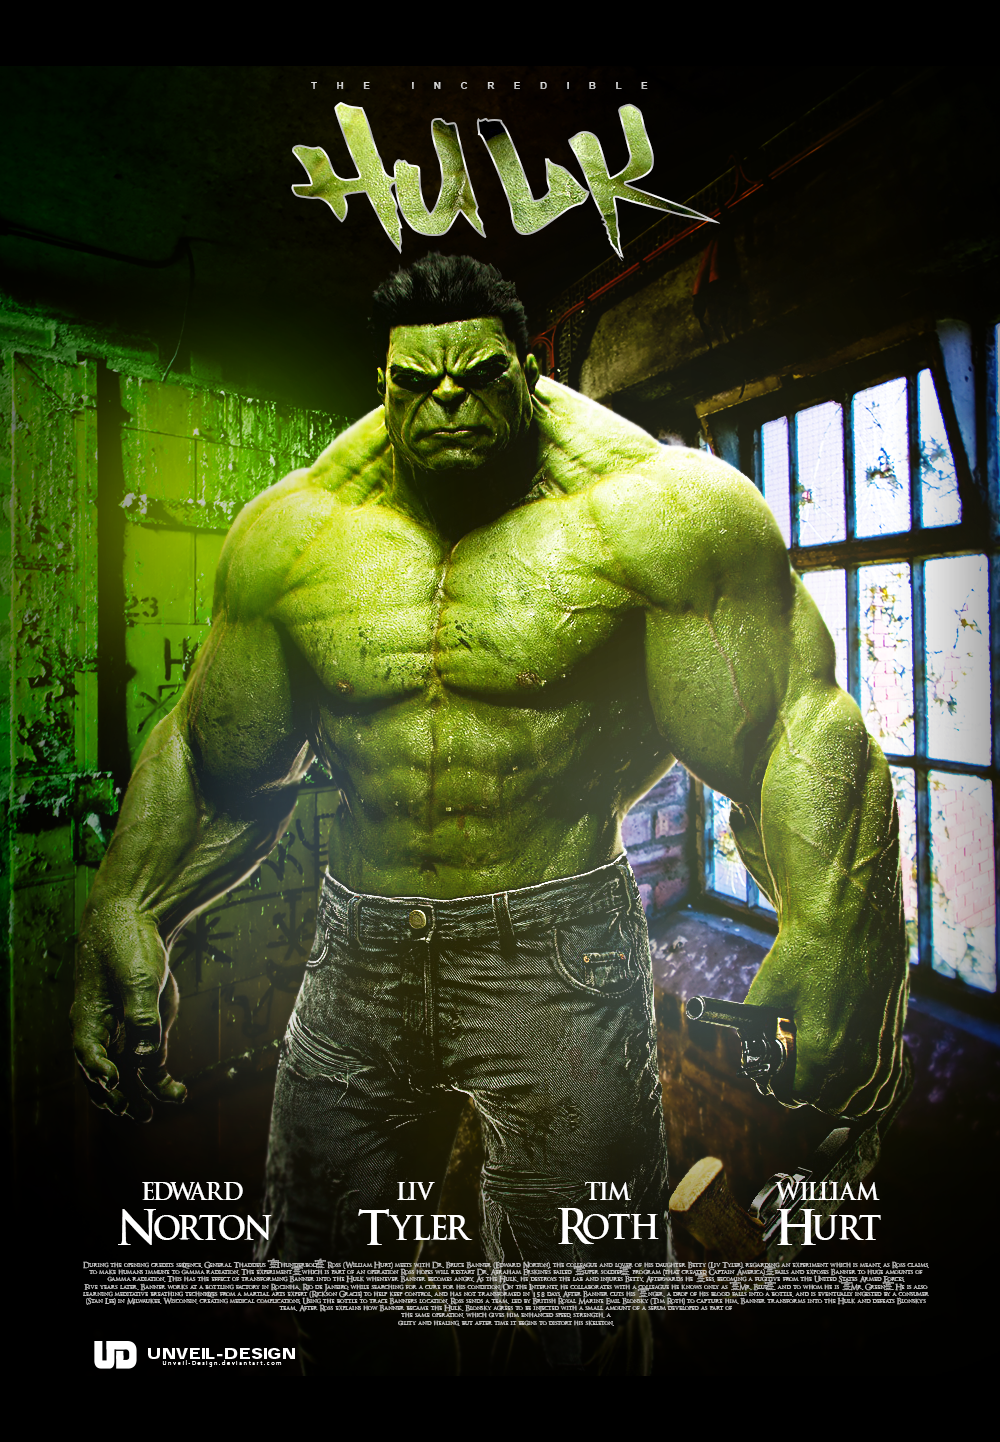 It's just a photo of Vibrant Incredible Hulk Images